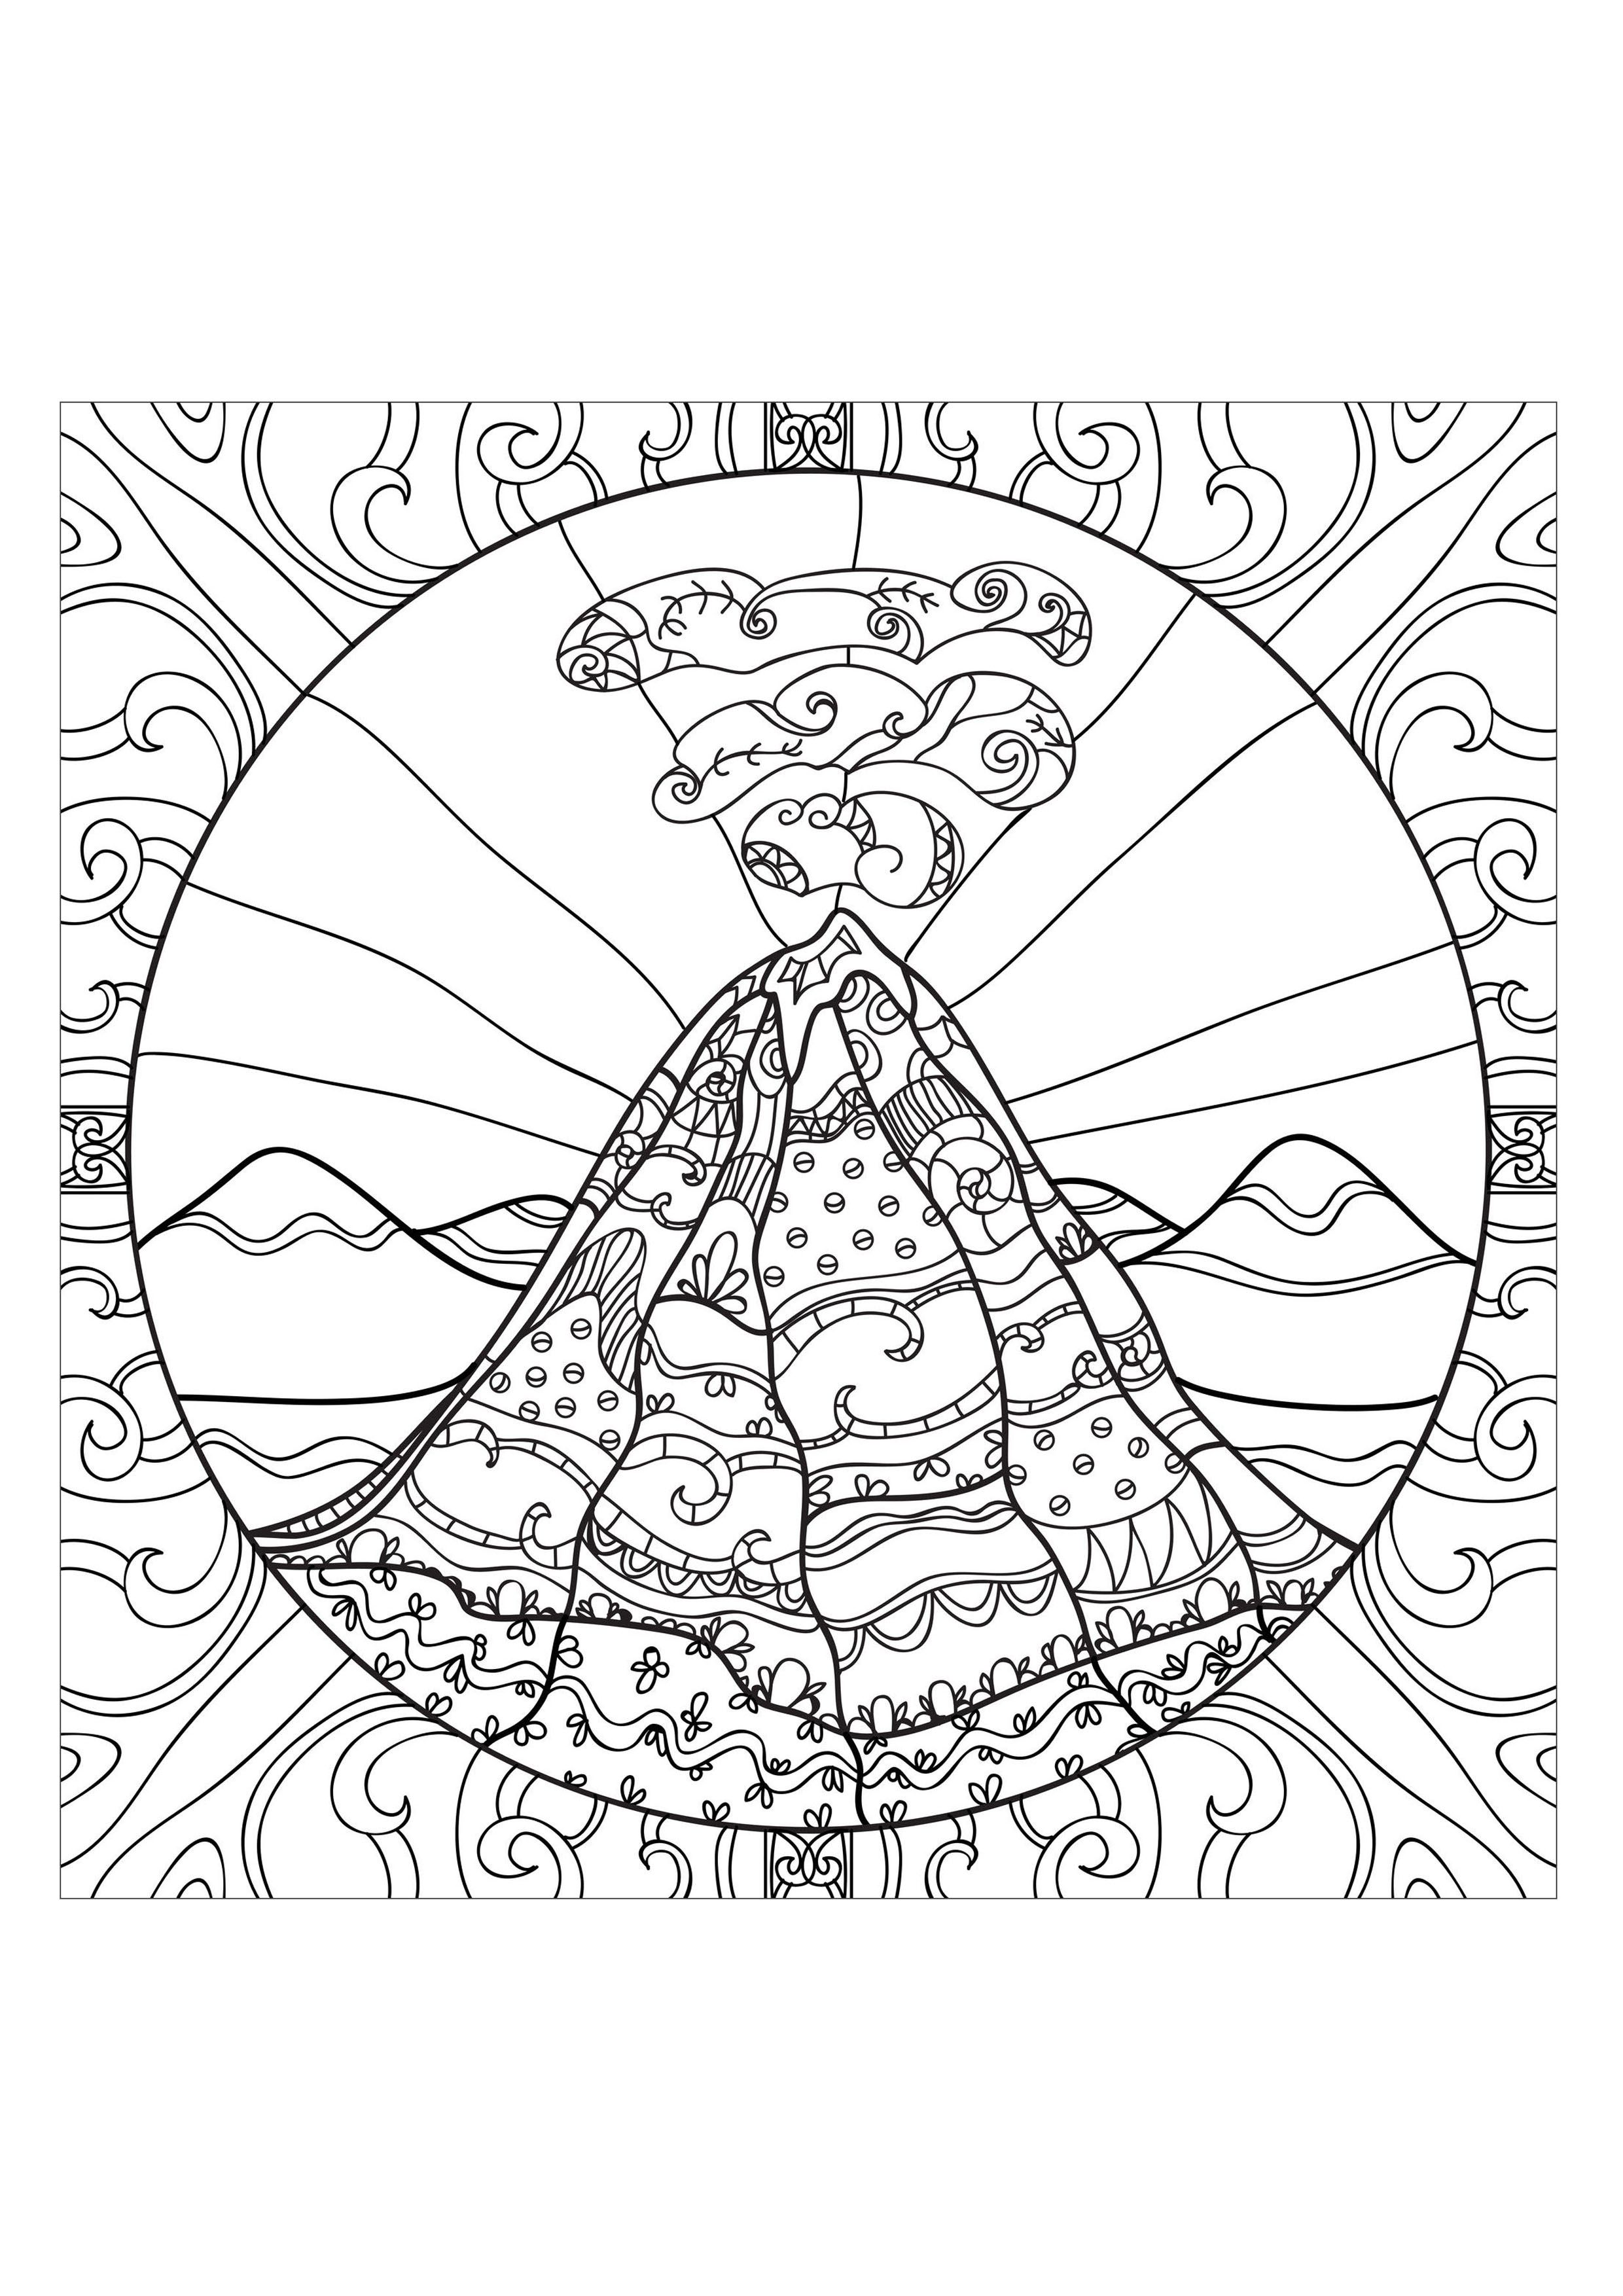 Coloring Pages For Teens Coloring Pages Detailed Coloring Pages